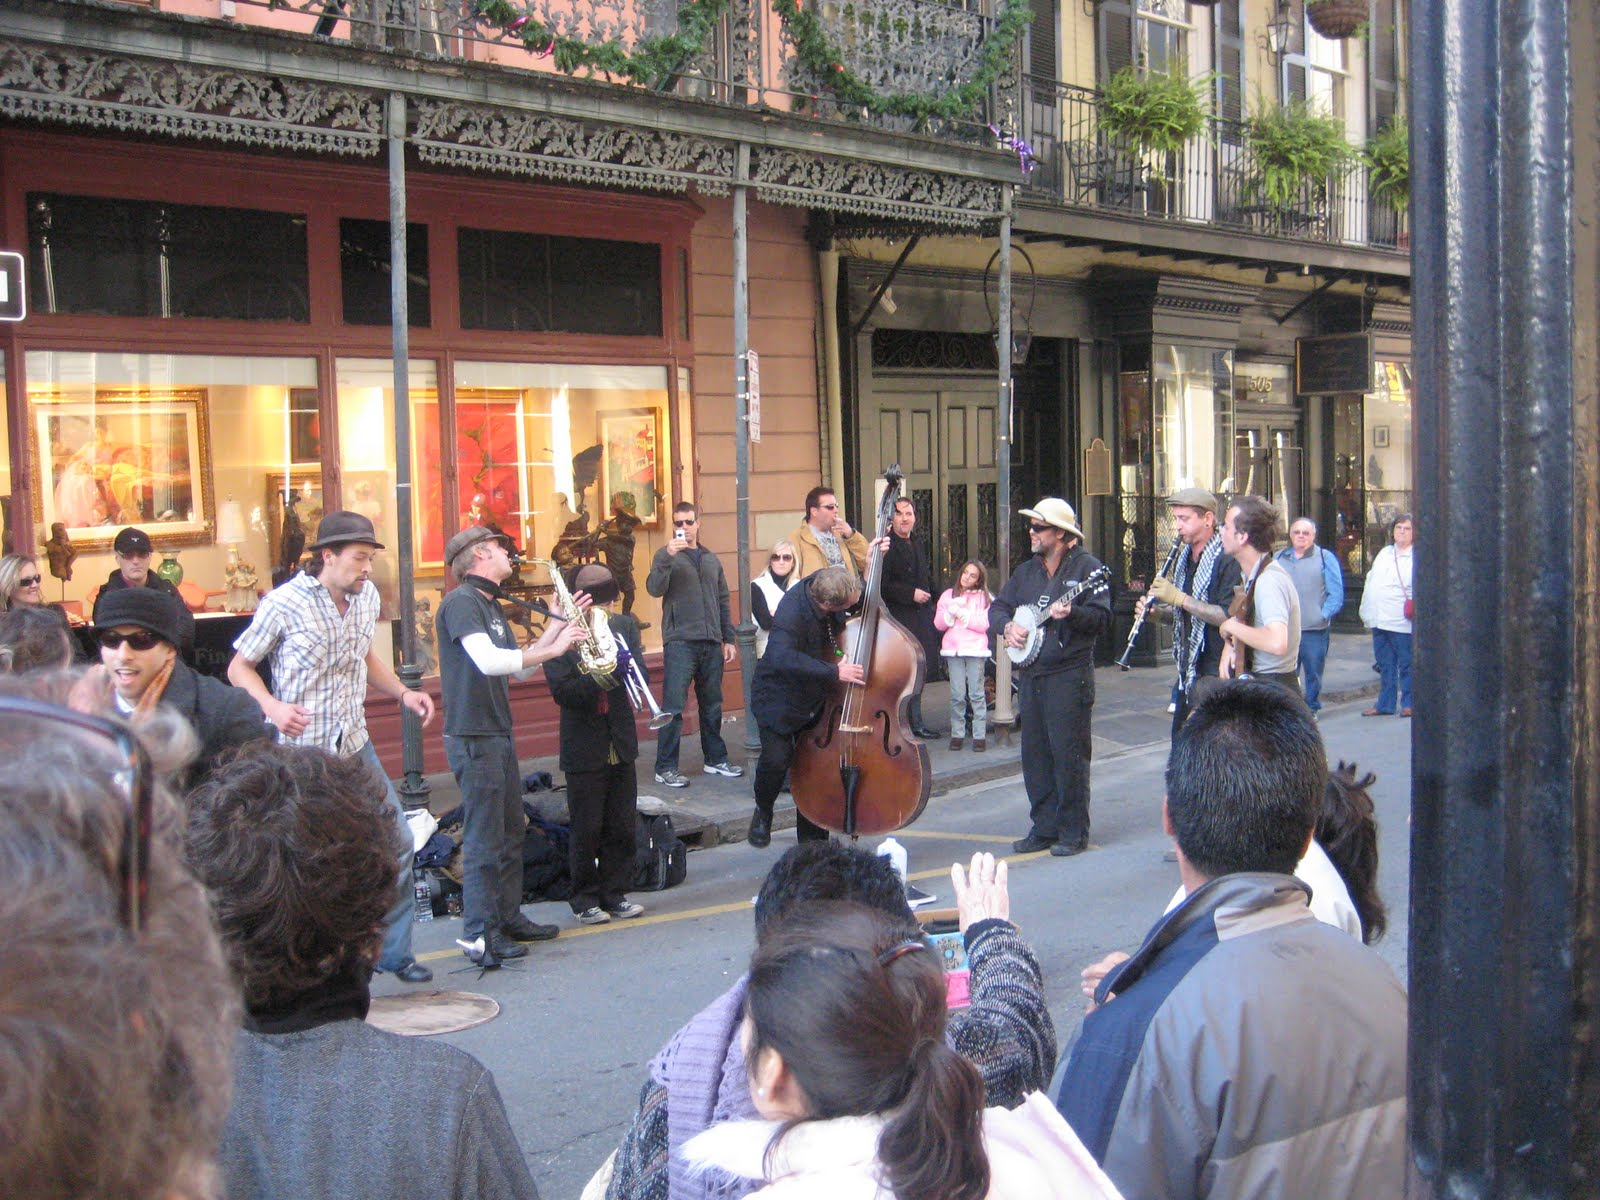 Street musicians in New Orleans' French Quarter